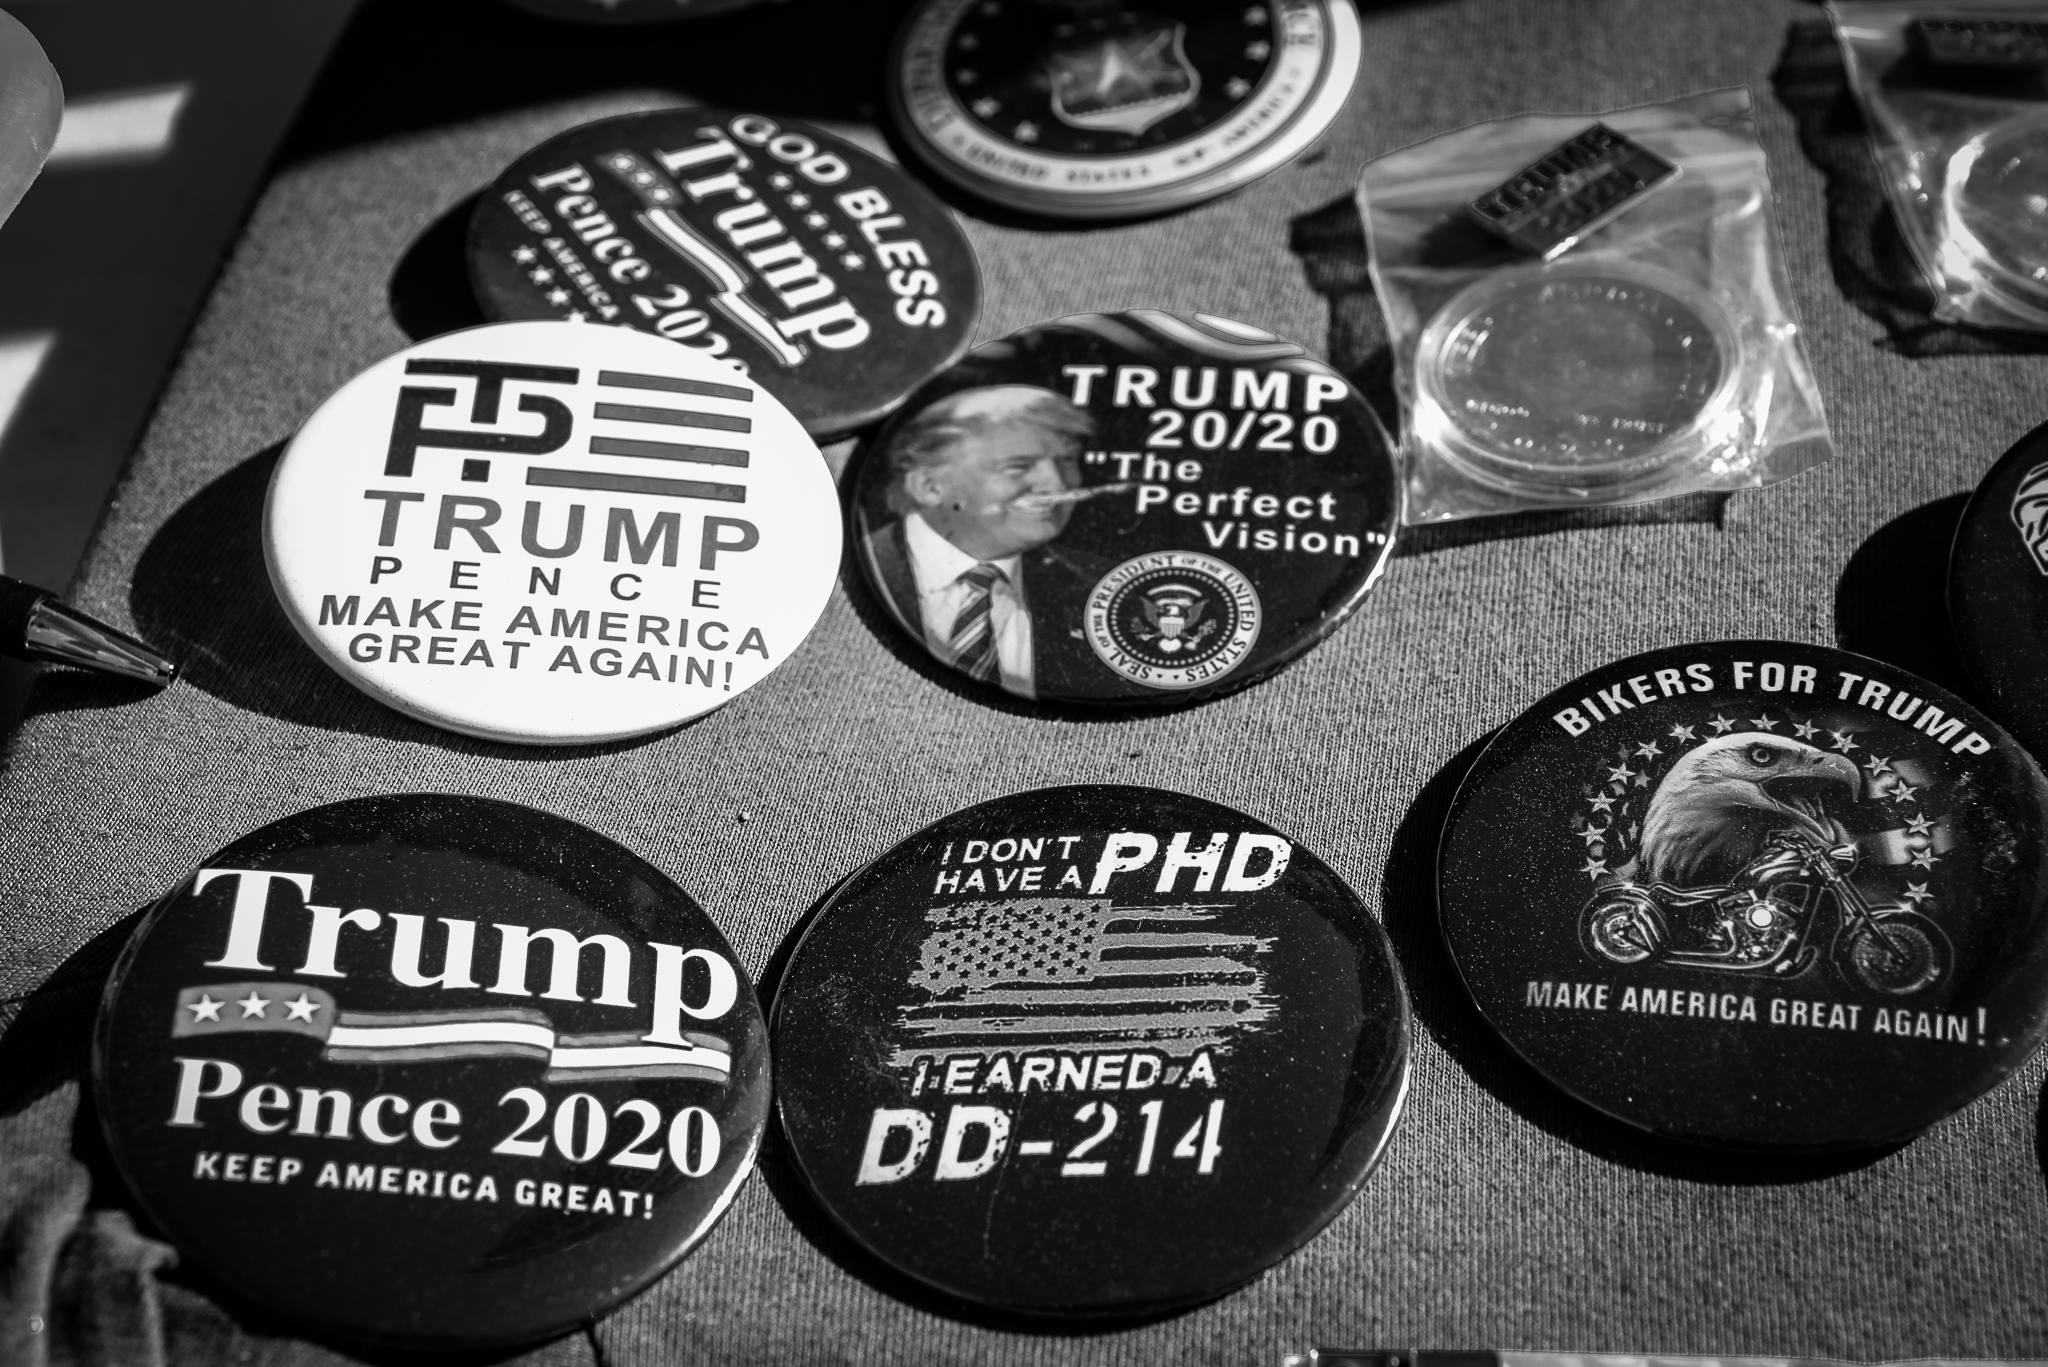 Trump buttons on display on the side of the road at a Trump rally in South Carolina. Photo: Lance Monotone.